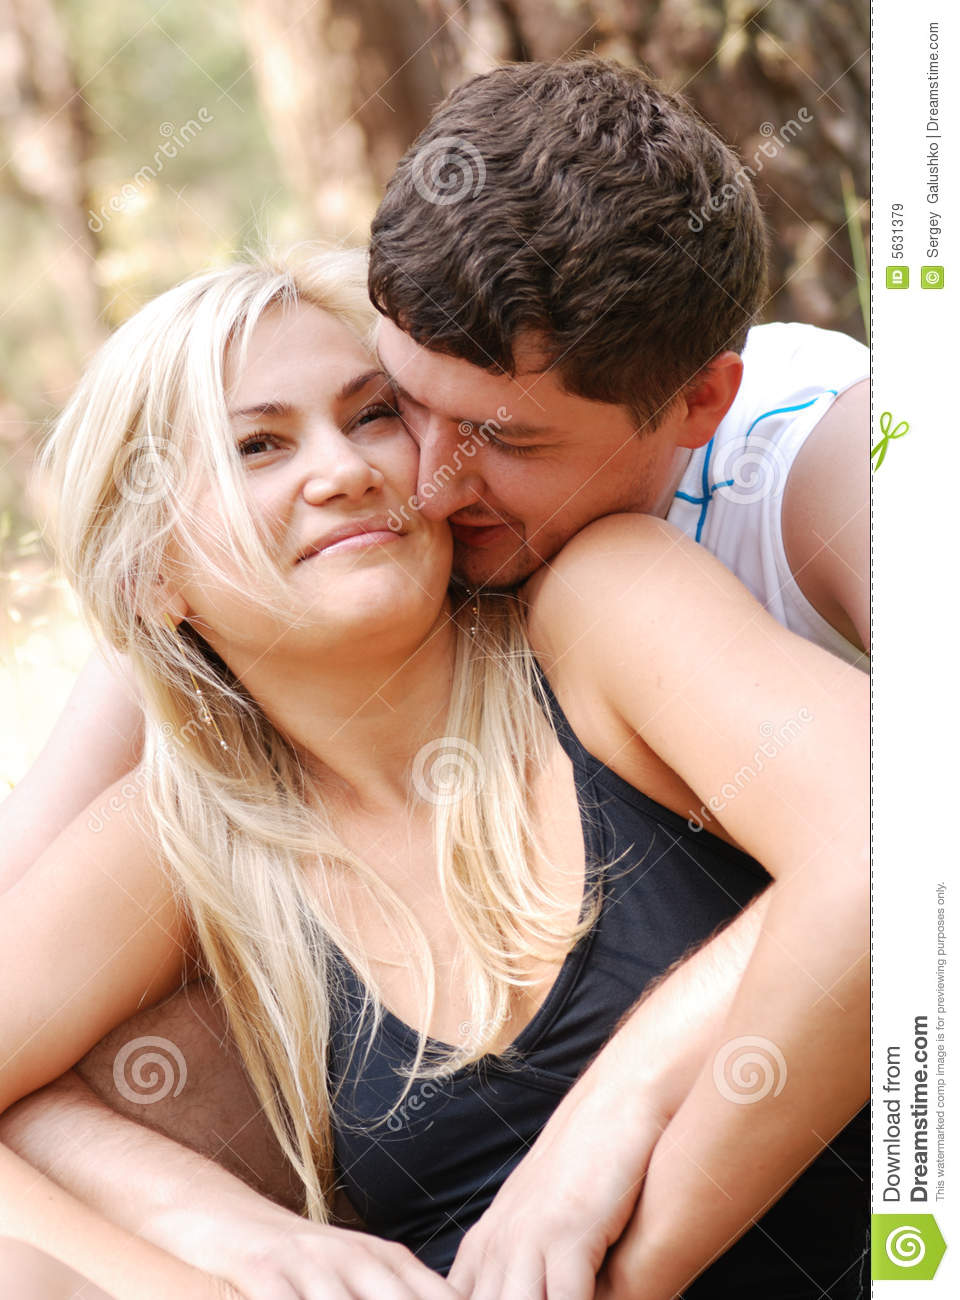 Love Man And Girl Royalty Free Stock Images - Image: 5631379